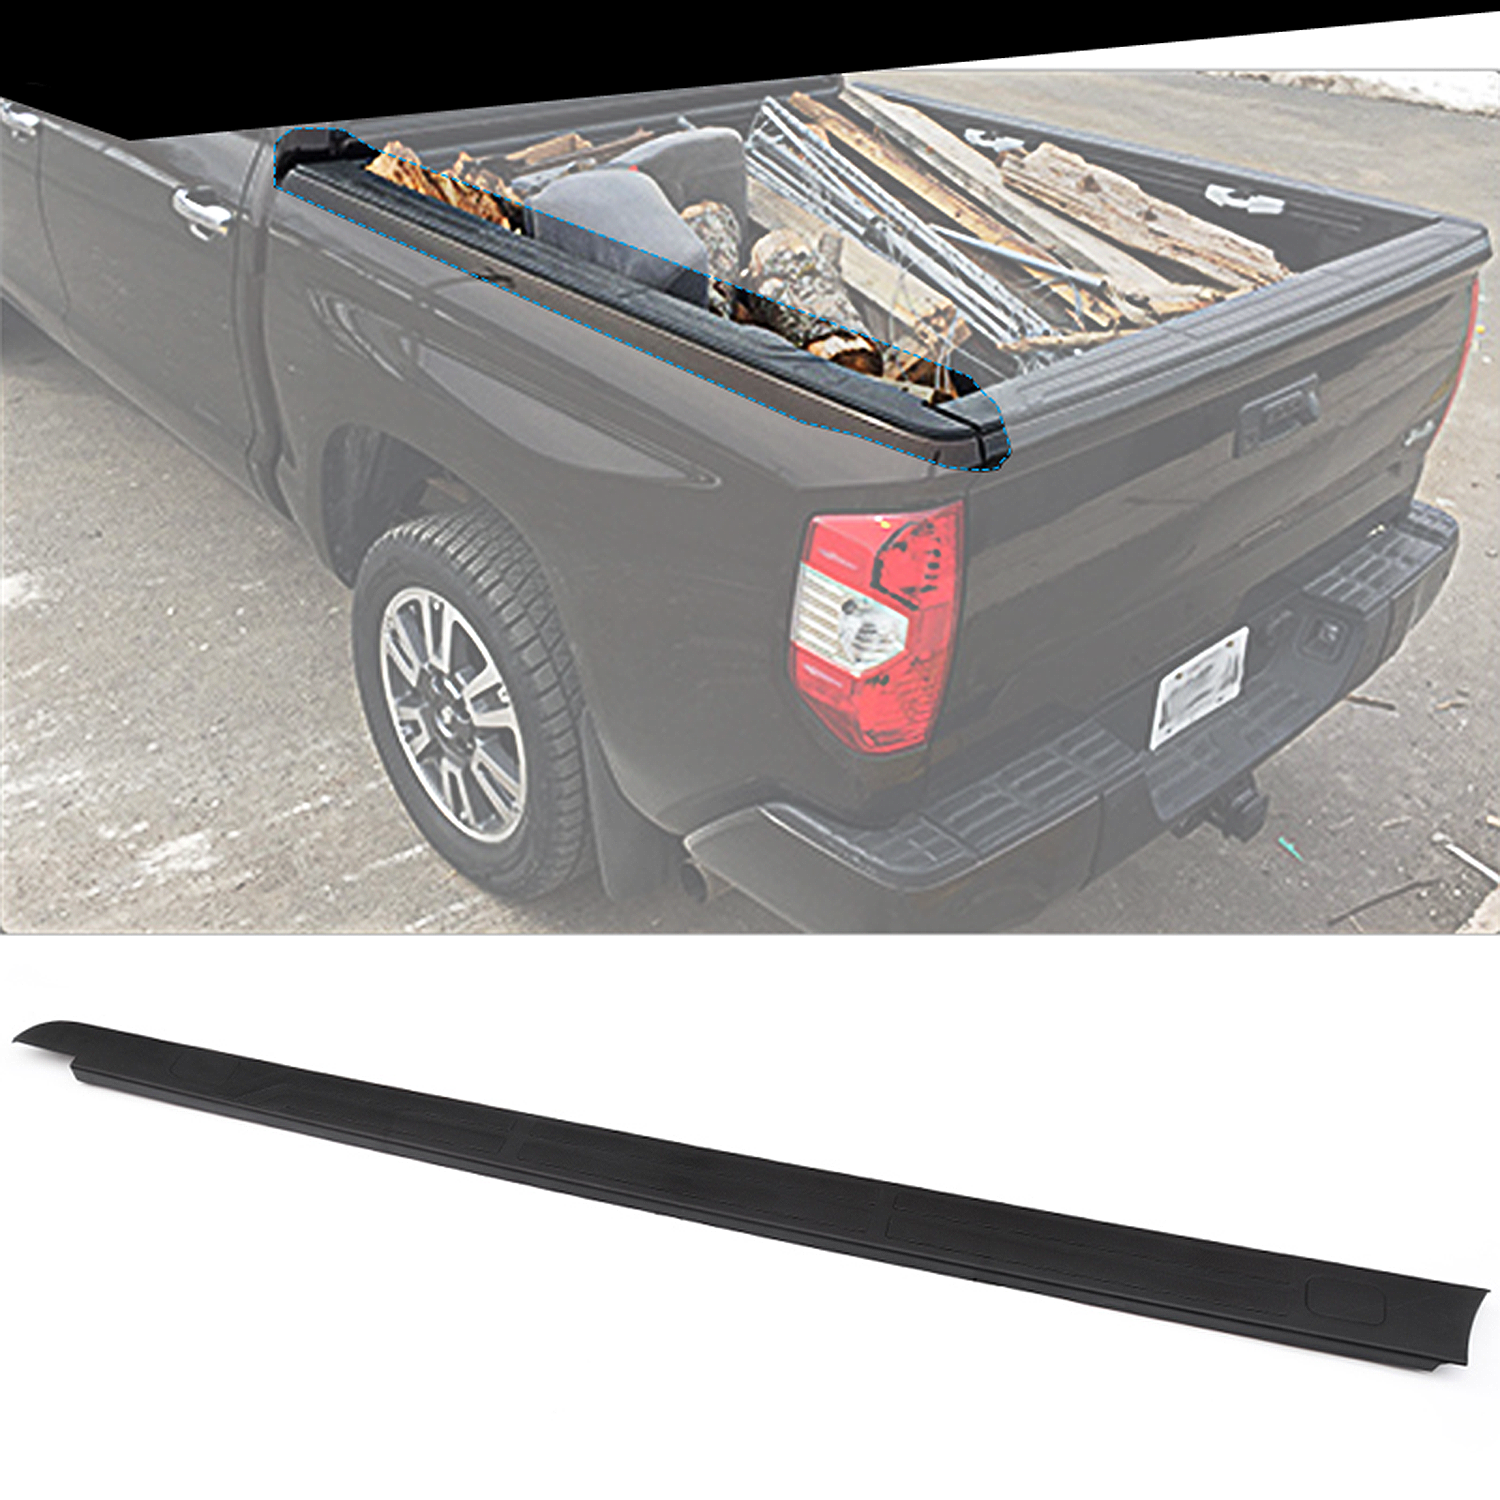 tundra toyota bed panel side trim left fender ft f150 flares cap tacoma